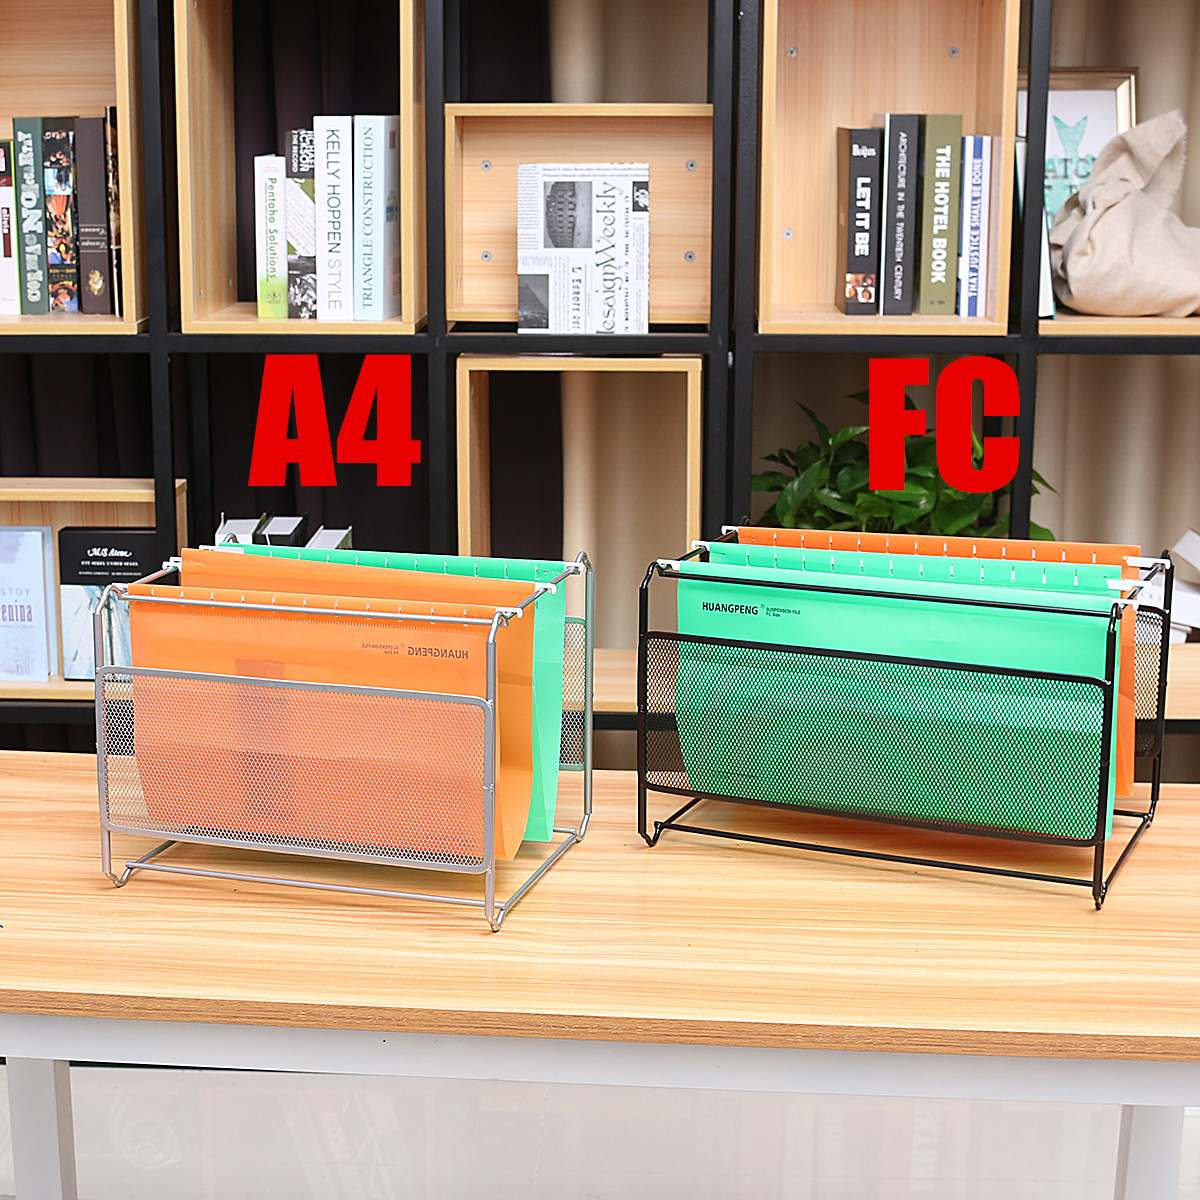 Magazine Holder Grid A4 File Bookshelf Wrought Iron Letter Storage Rack Tray Holder New Office Desk Organizer File Tray